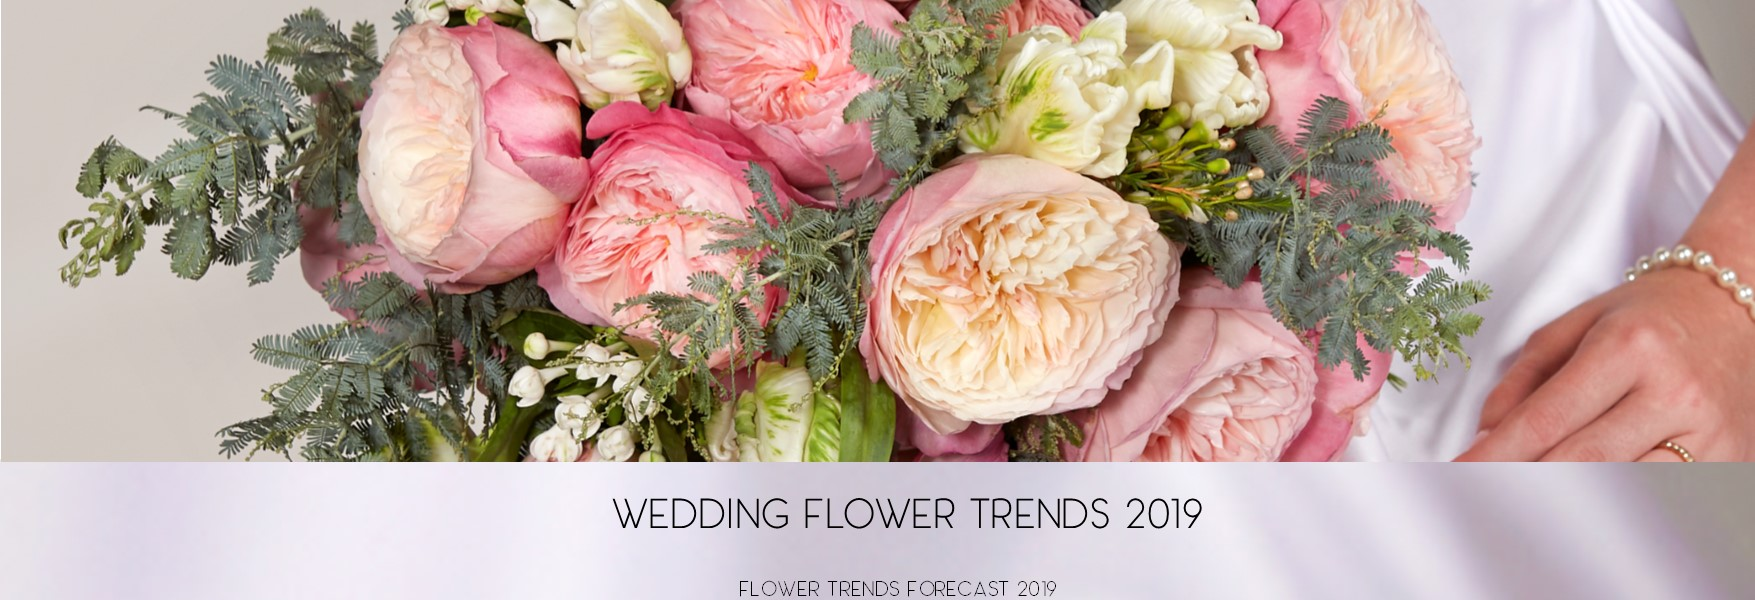 WeddingFlower Trends2019Banner 1170x400